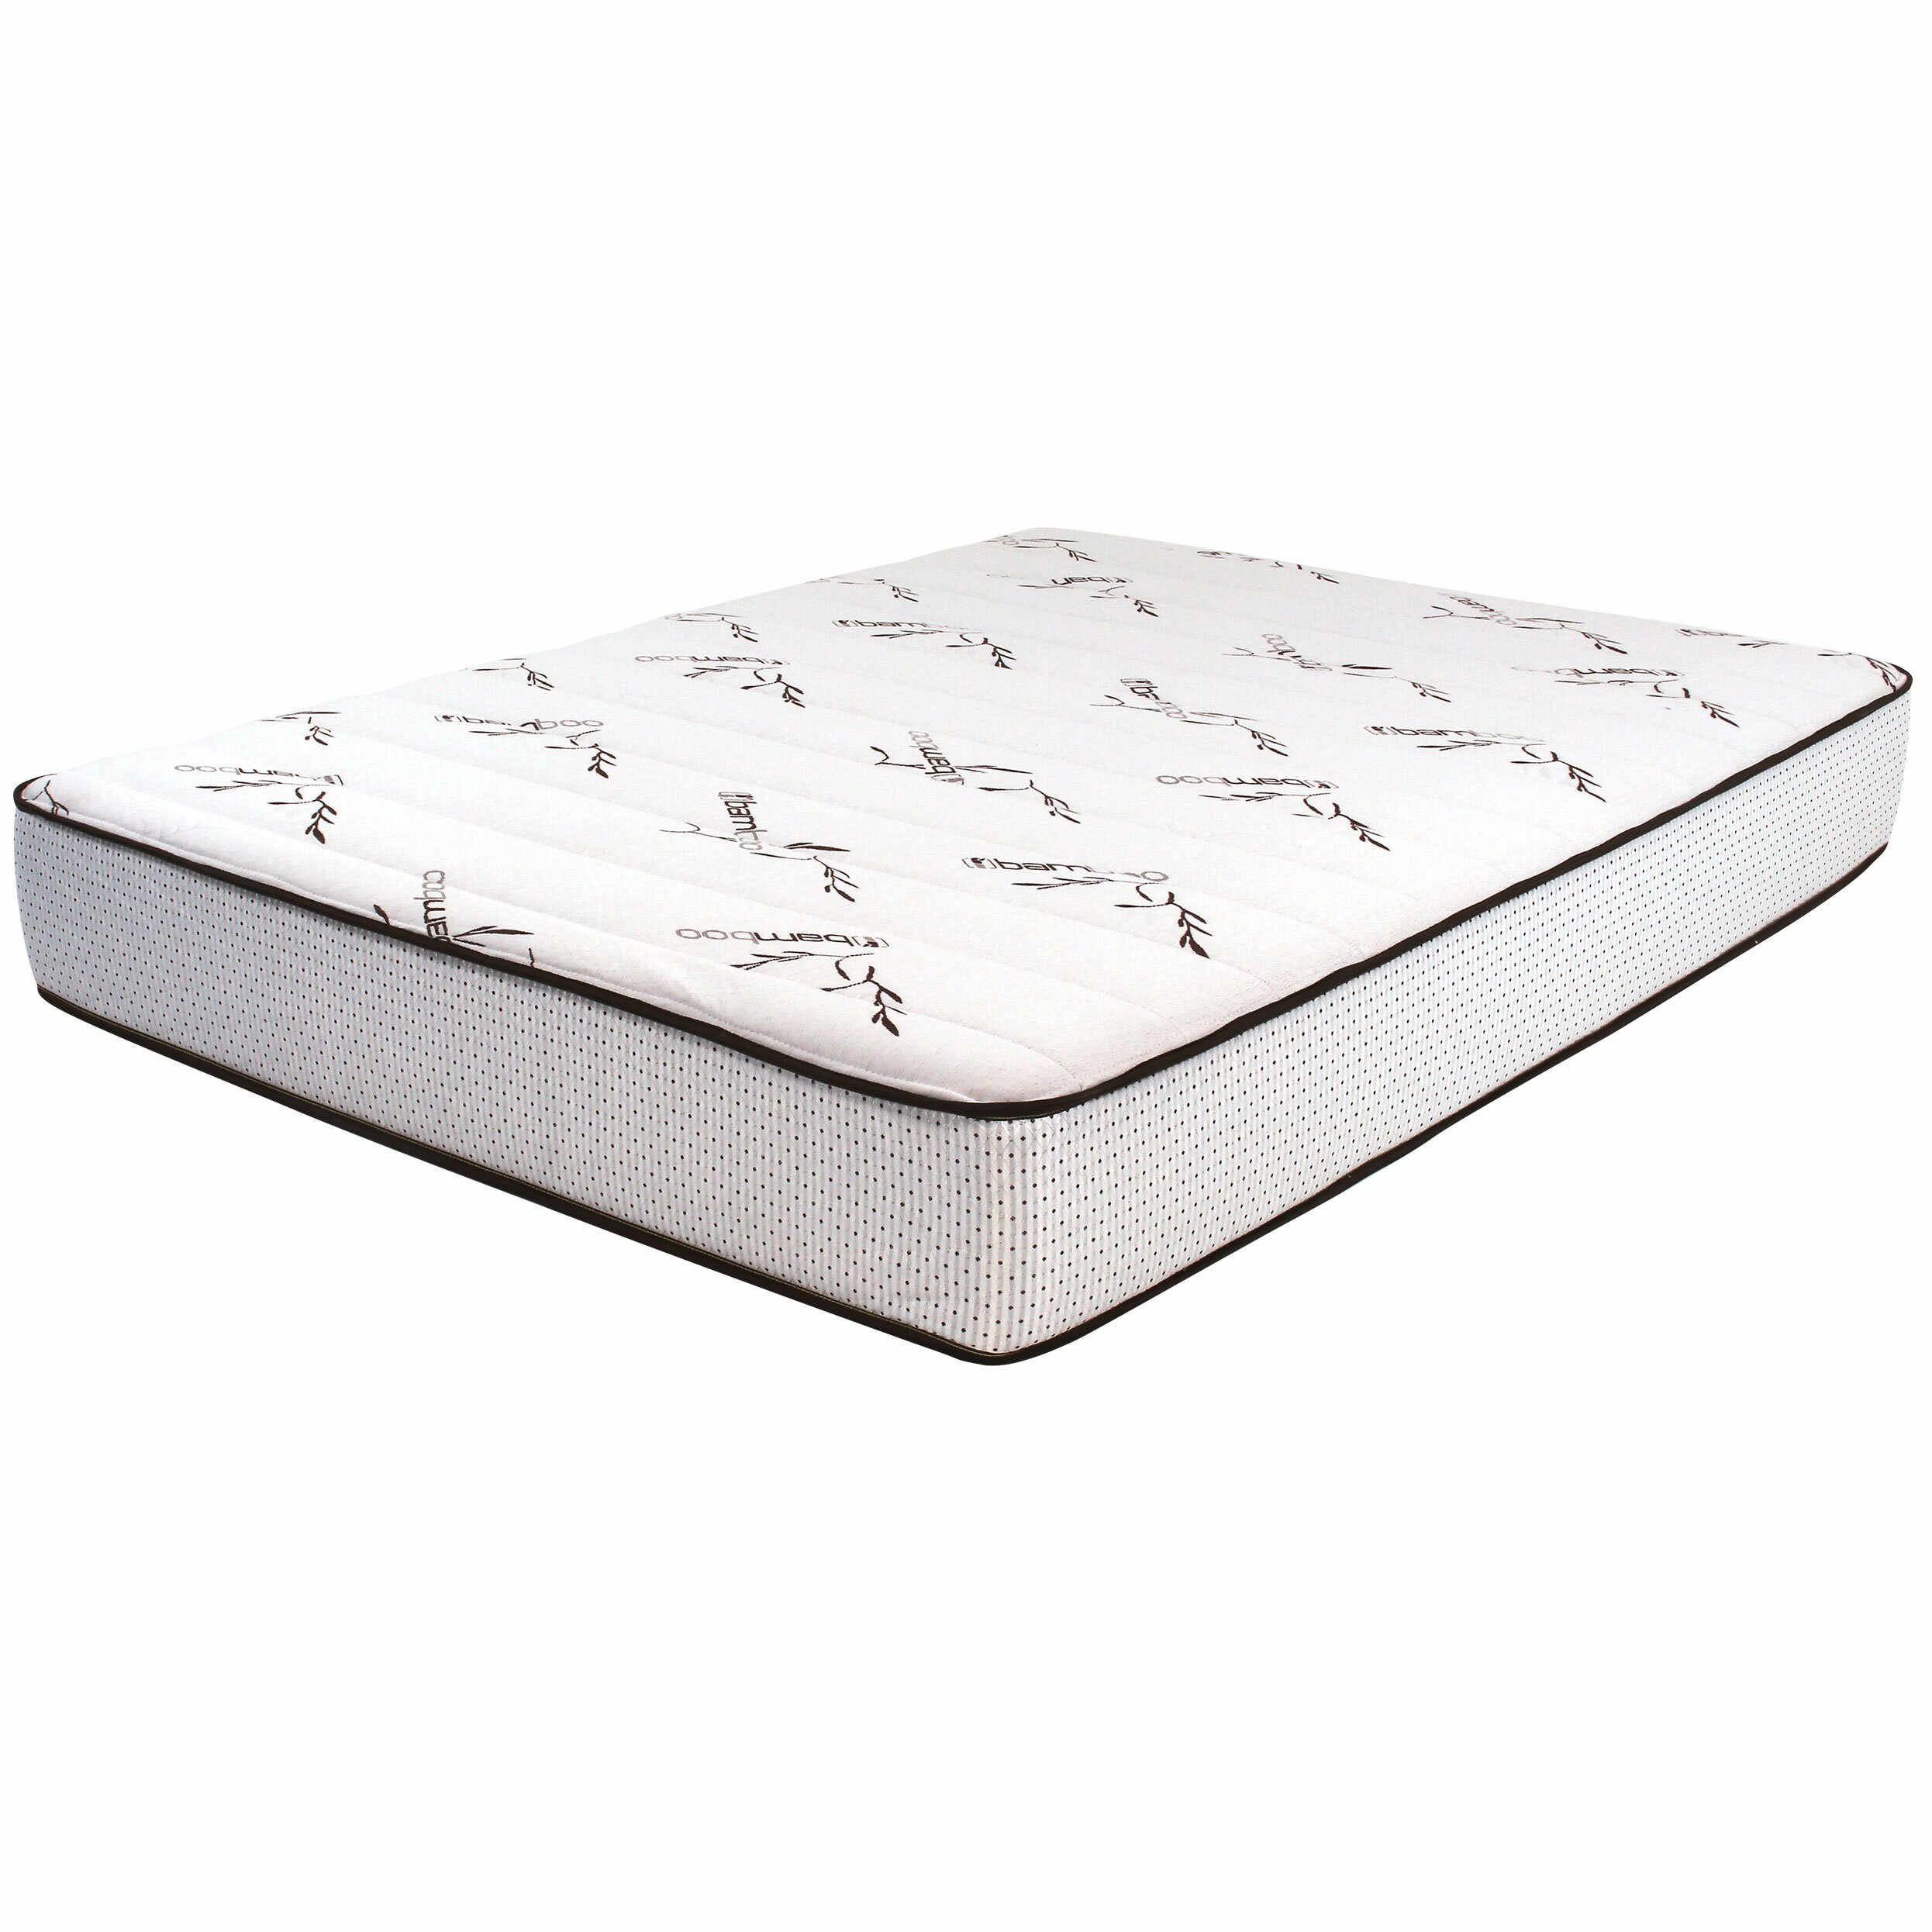 Brooklyn Bedding Ultimate Dreams 10 Quot Firm Latex Mattress